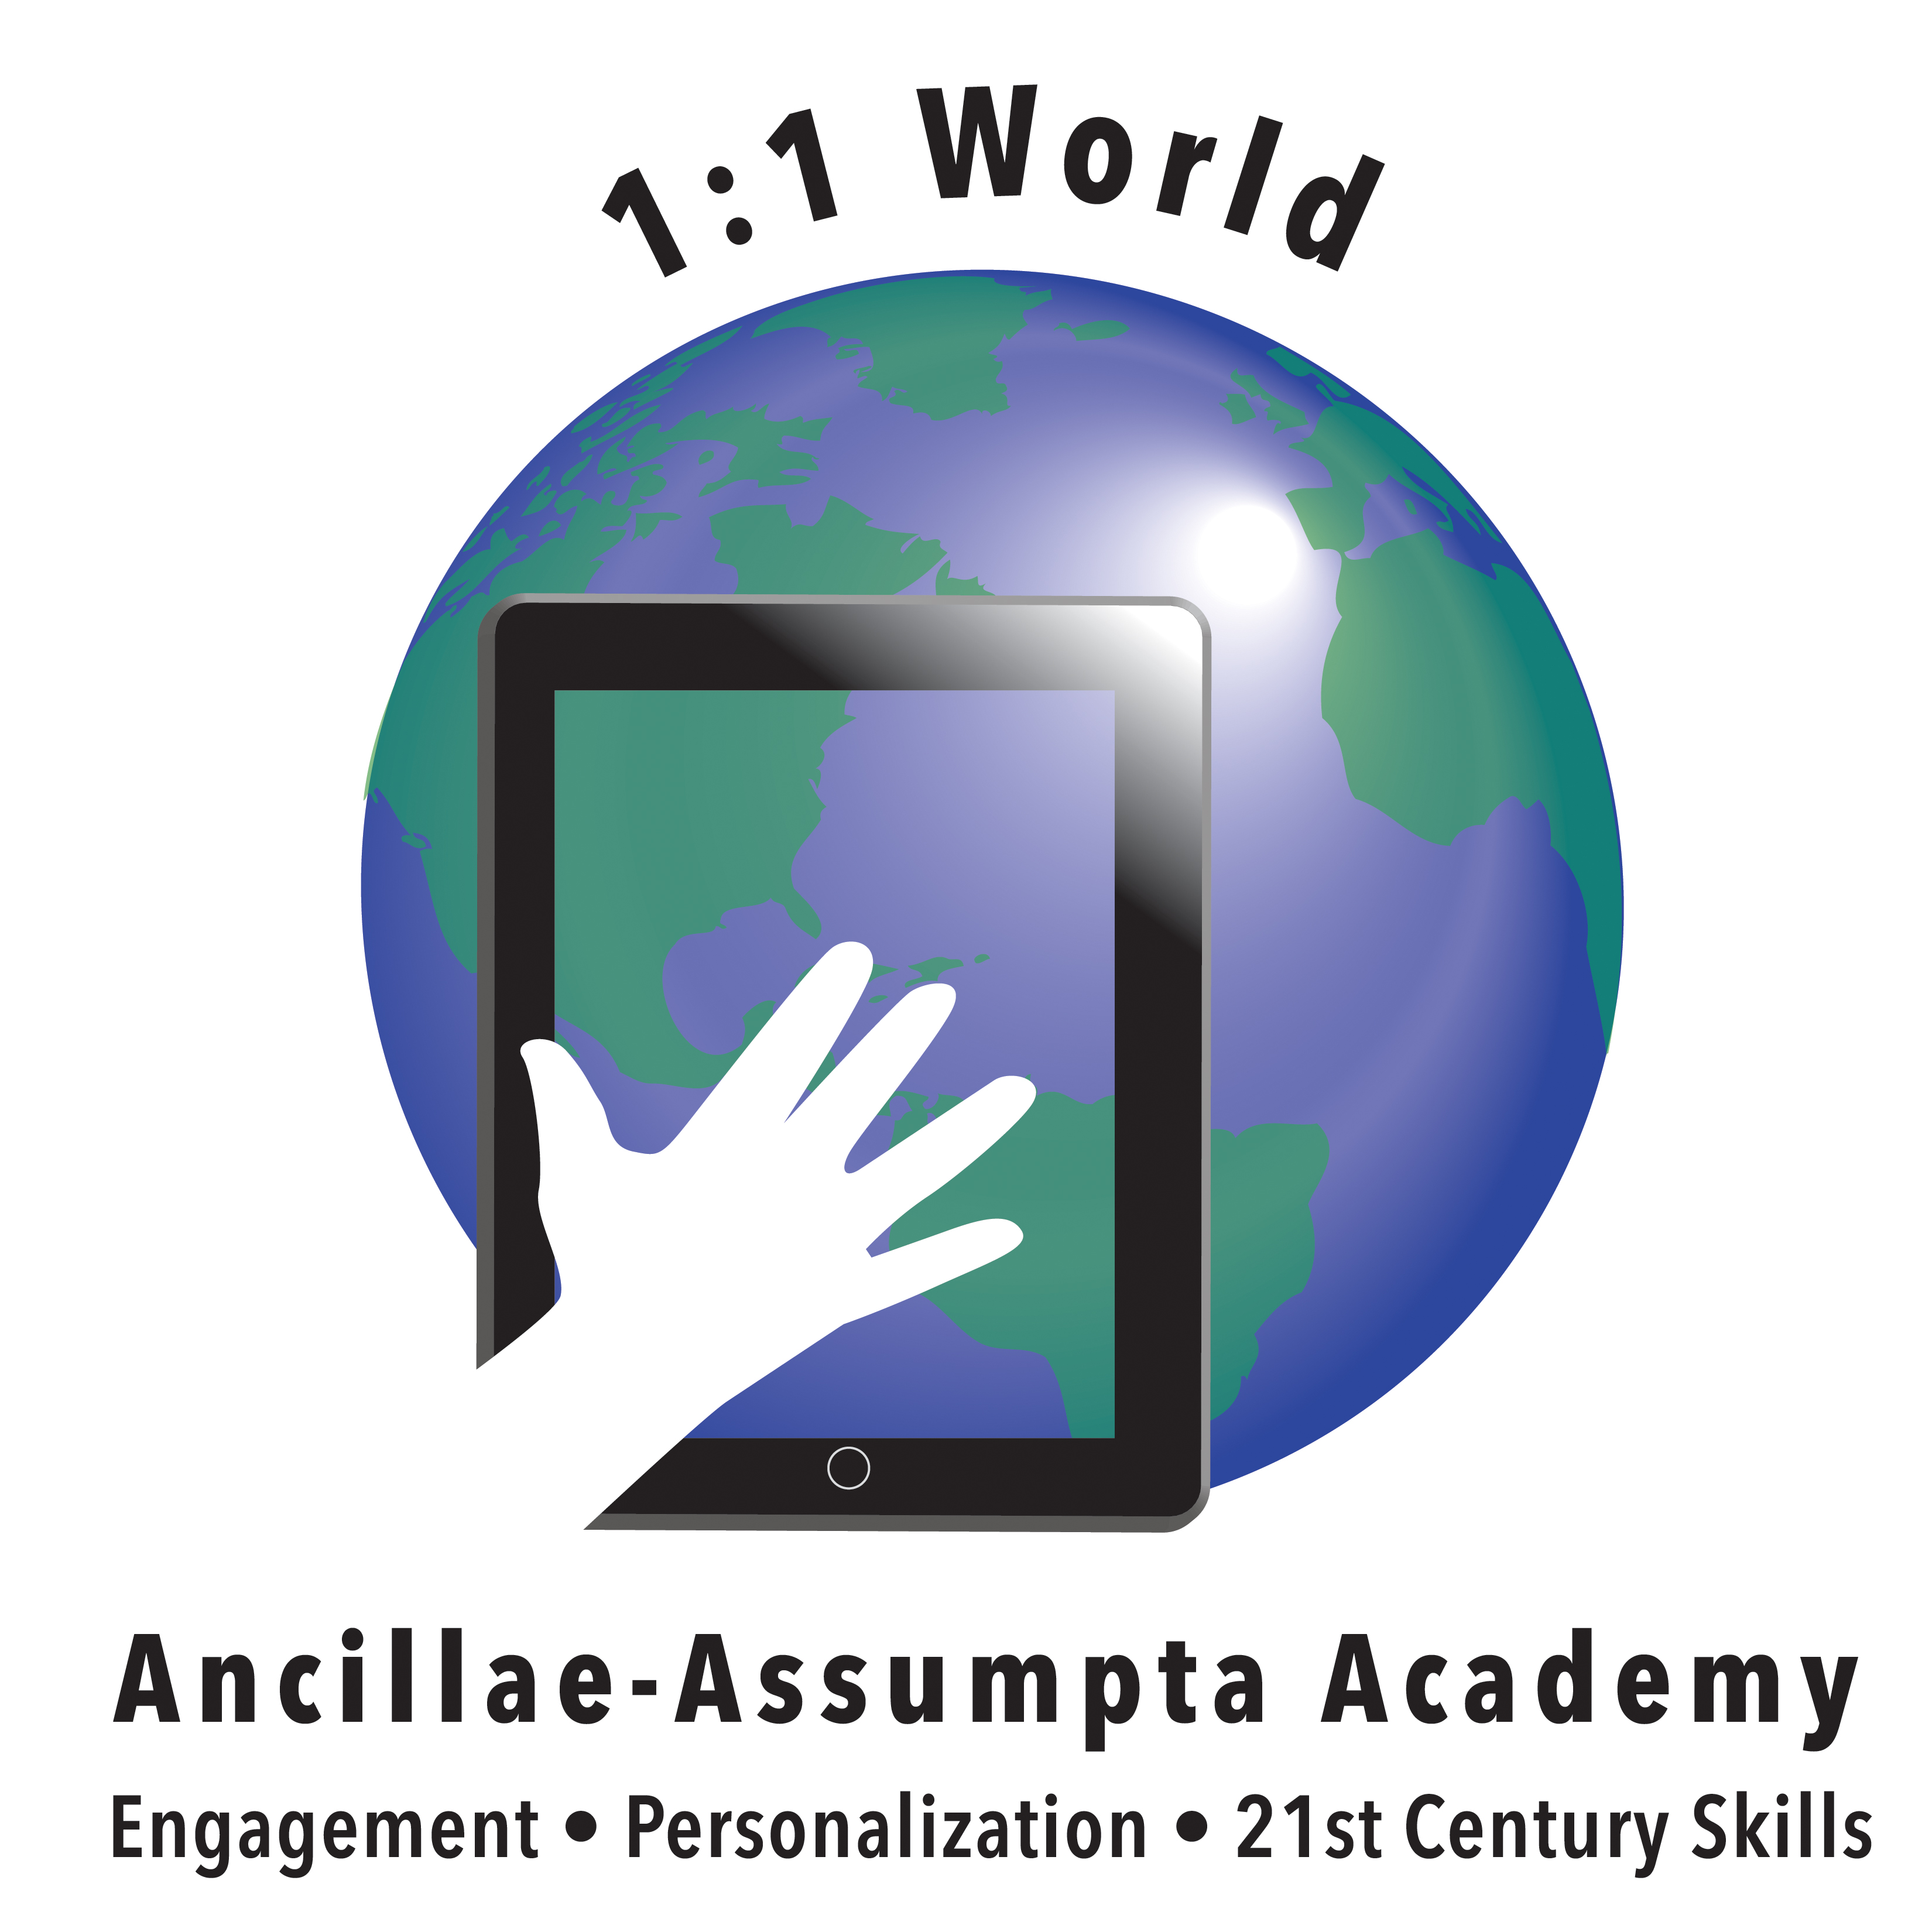 1 to 1 World Program for Ancillae-Assumpta Academy